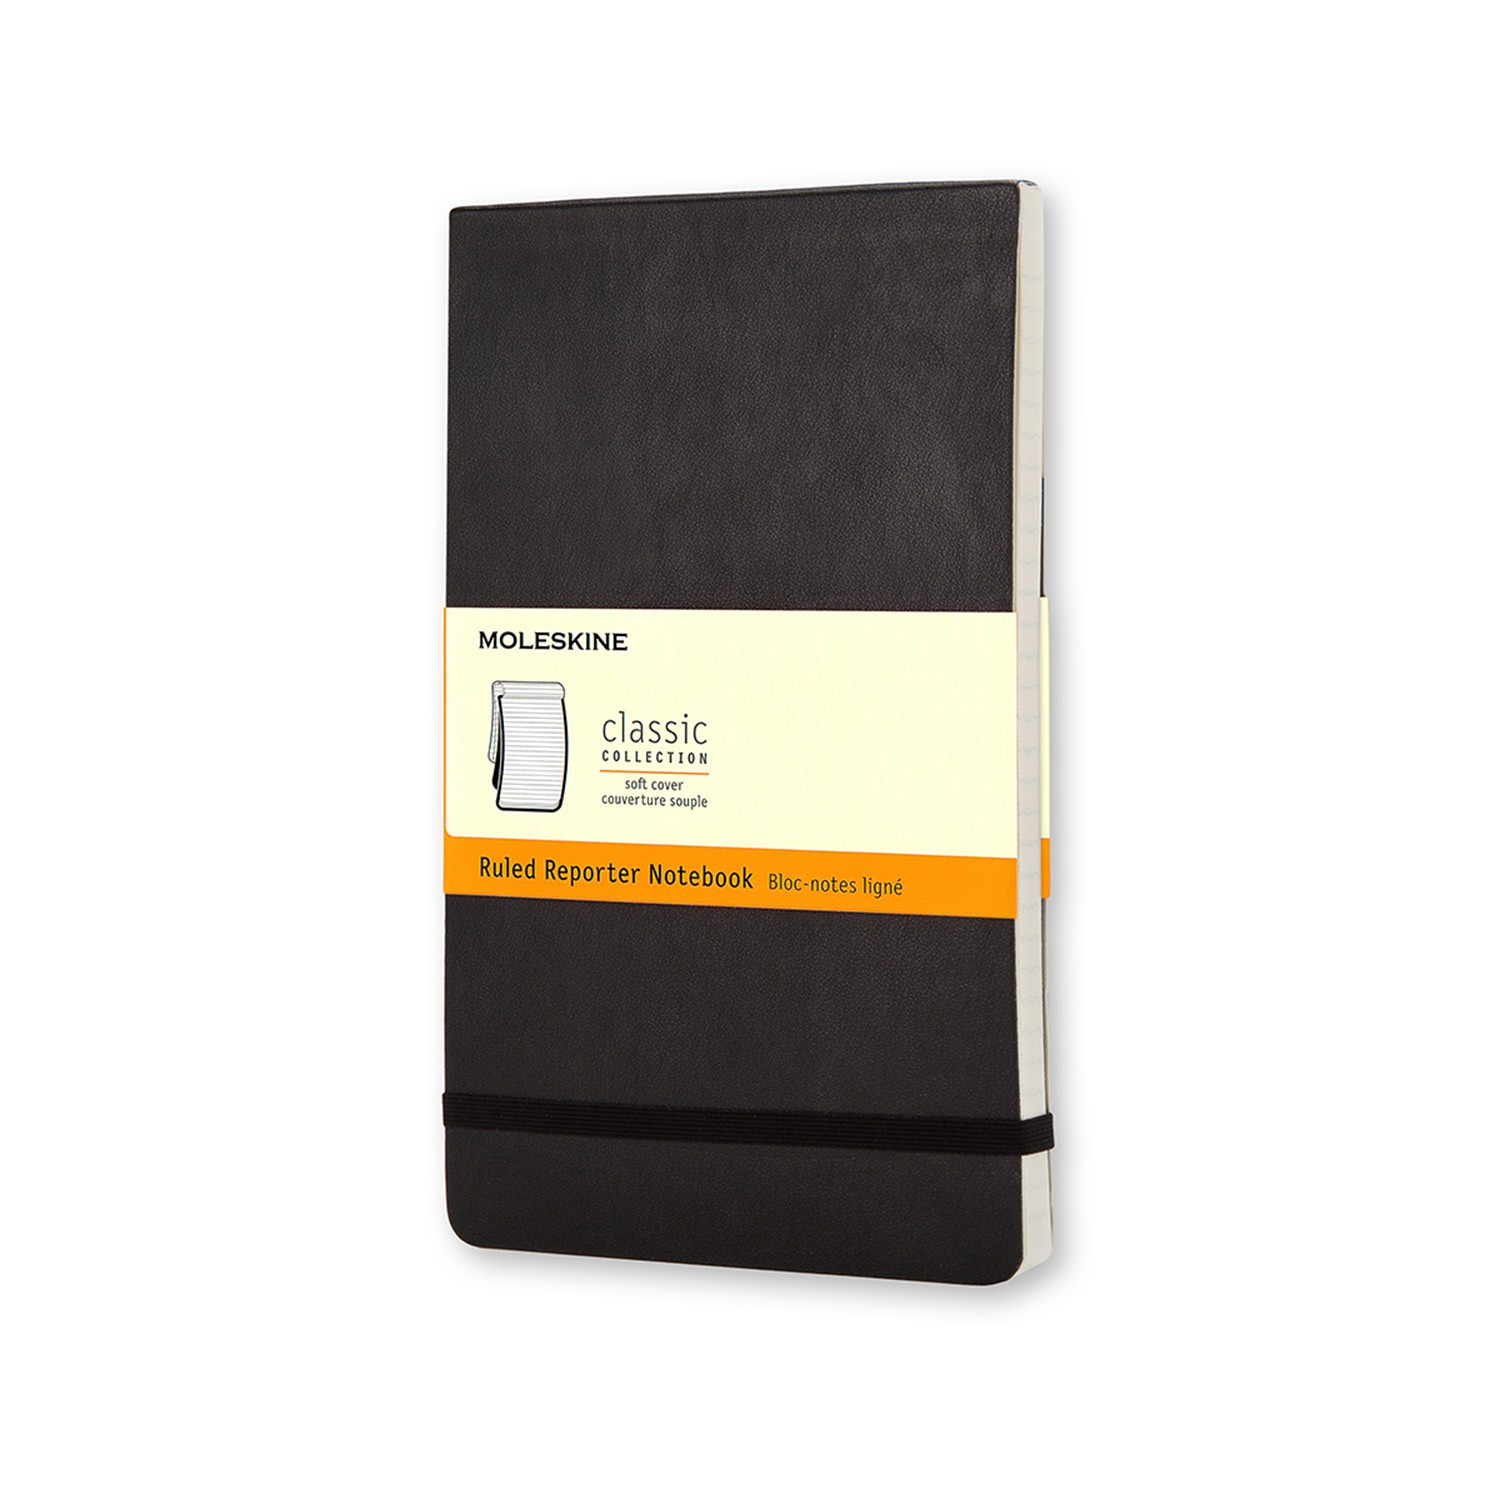 3 Moleskine Classic Collection Ruled Reporter Notebooks